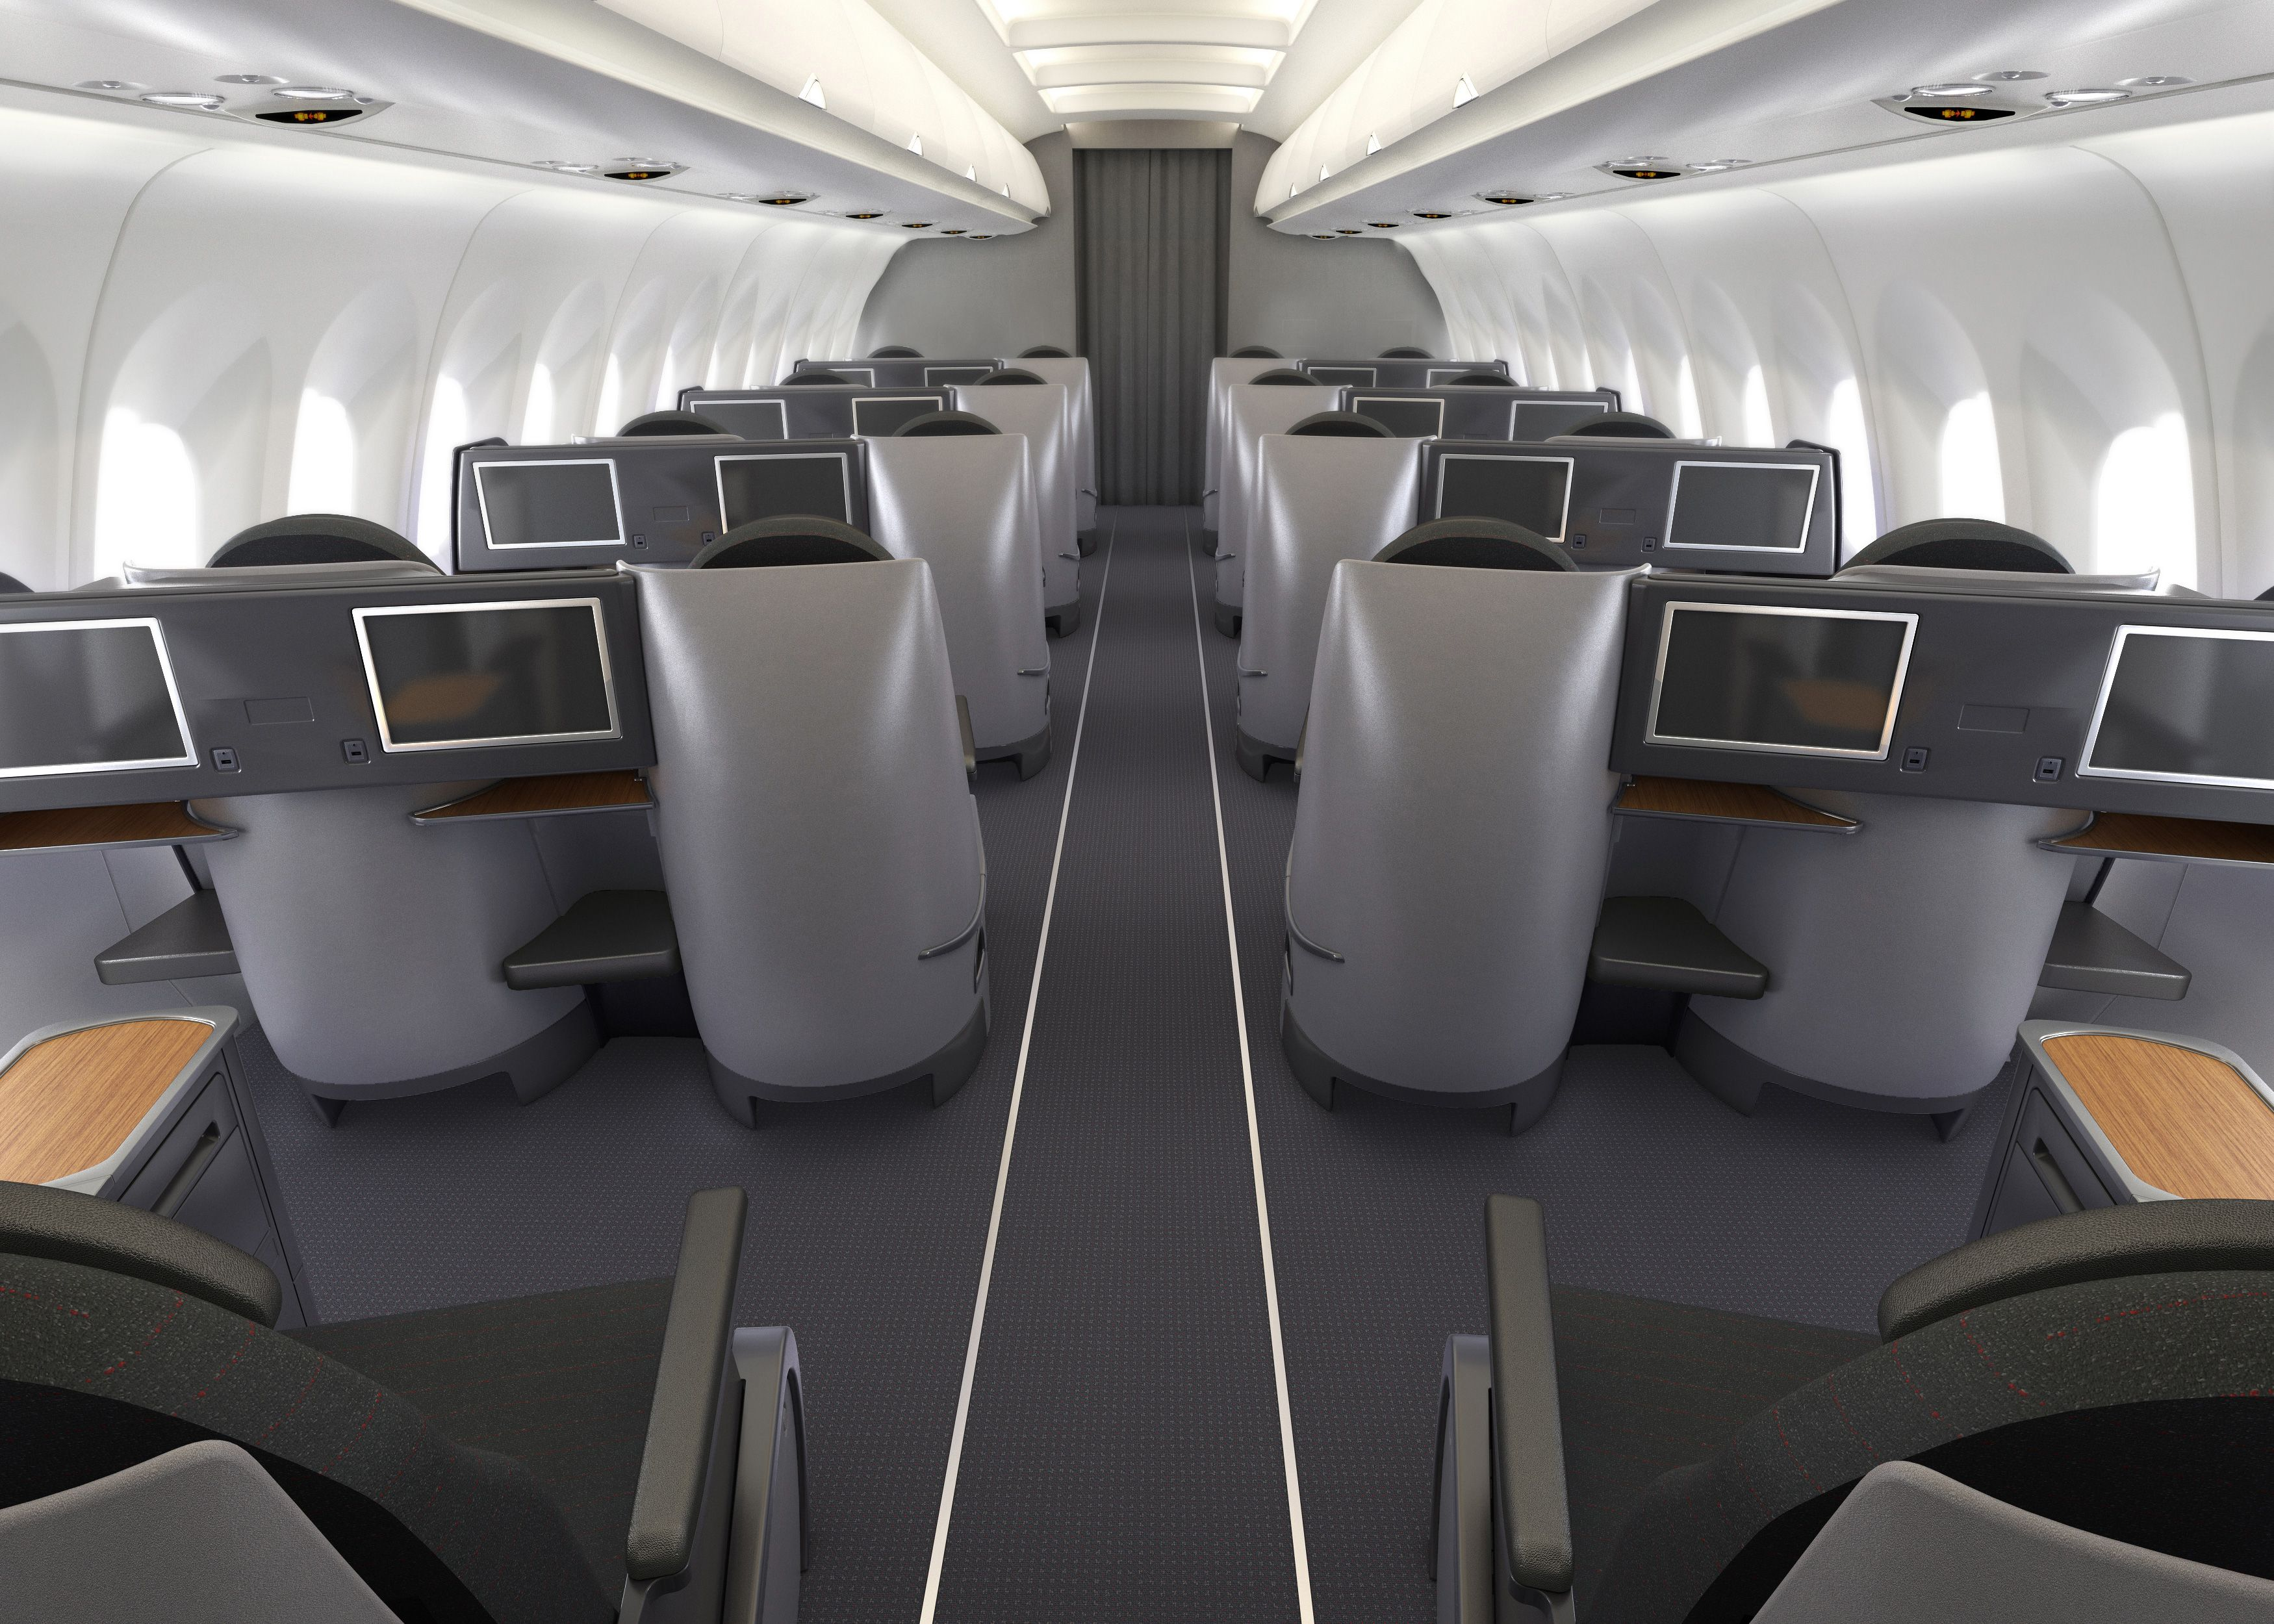 New Business Class American Airlines A321 Transcontinental